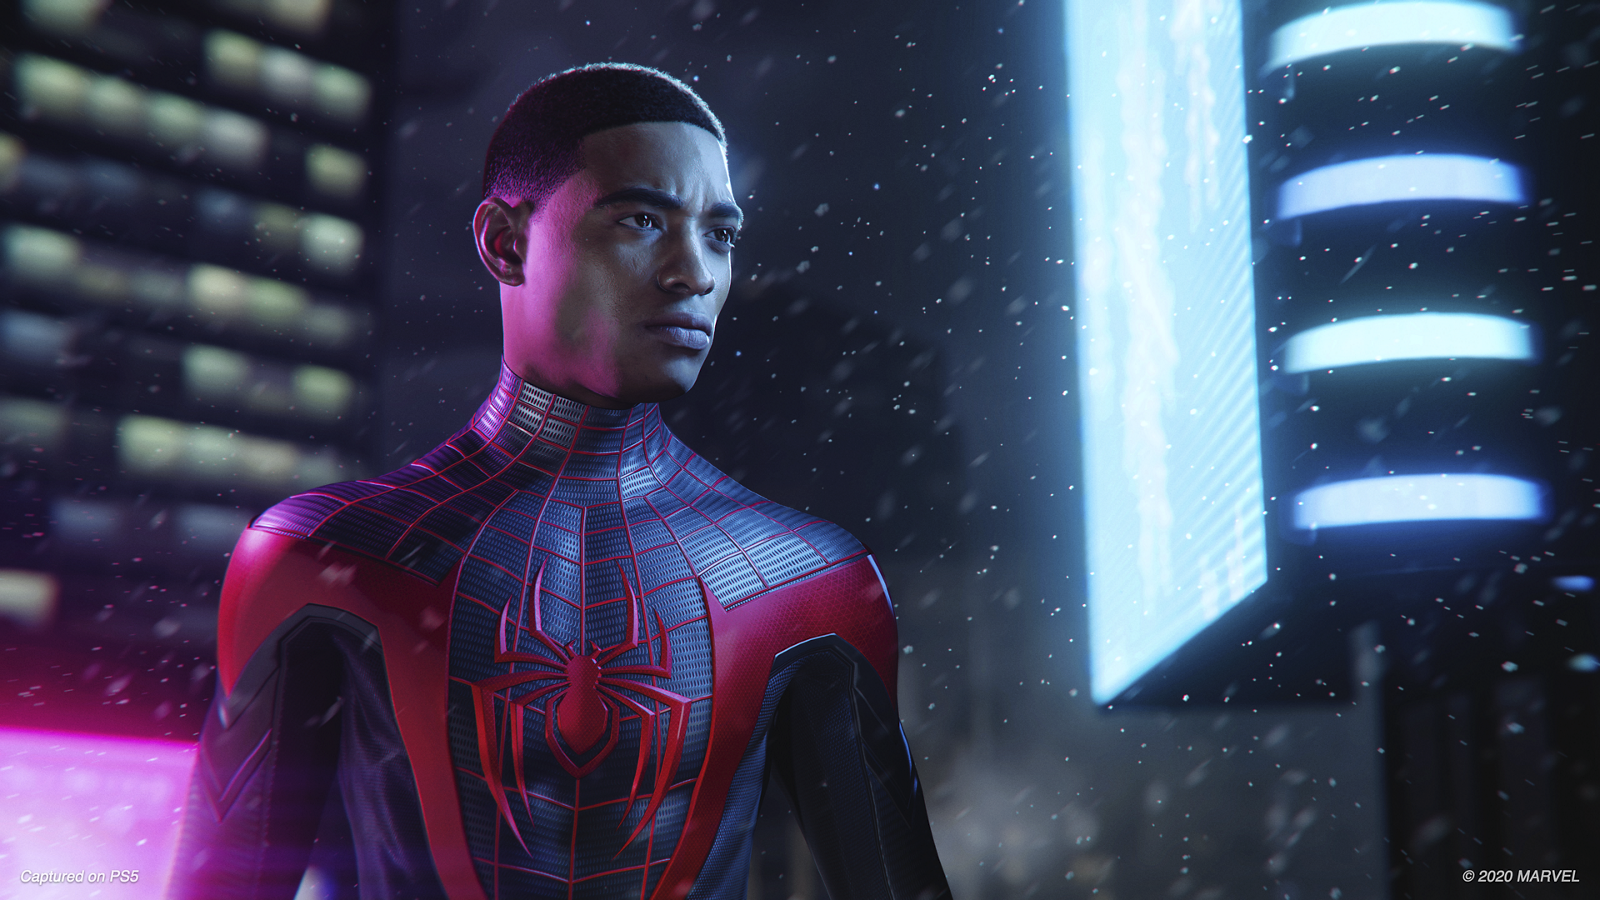 https://gmedia.playstation.com/is/image/SIEPDC/spiderman-miles-morales-screenshot-01-disclaimer-en-01oct20?$1600px--t$